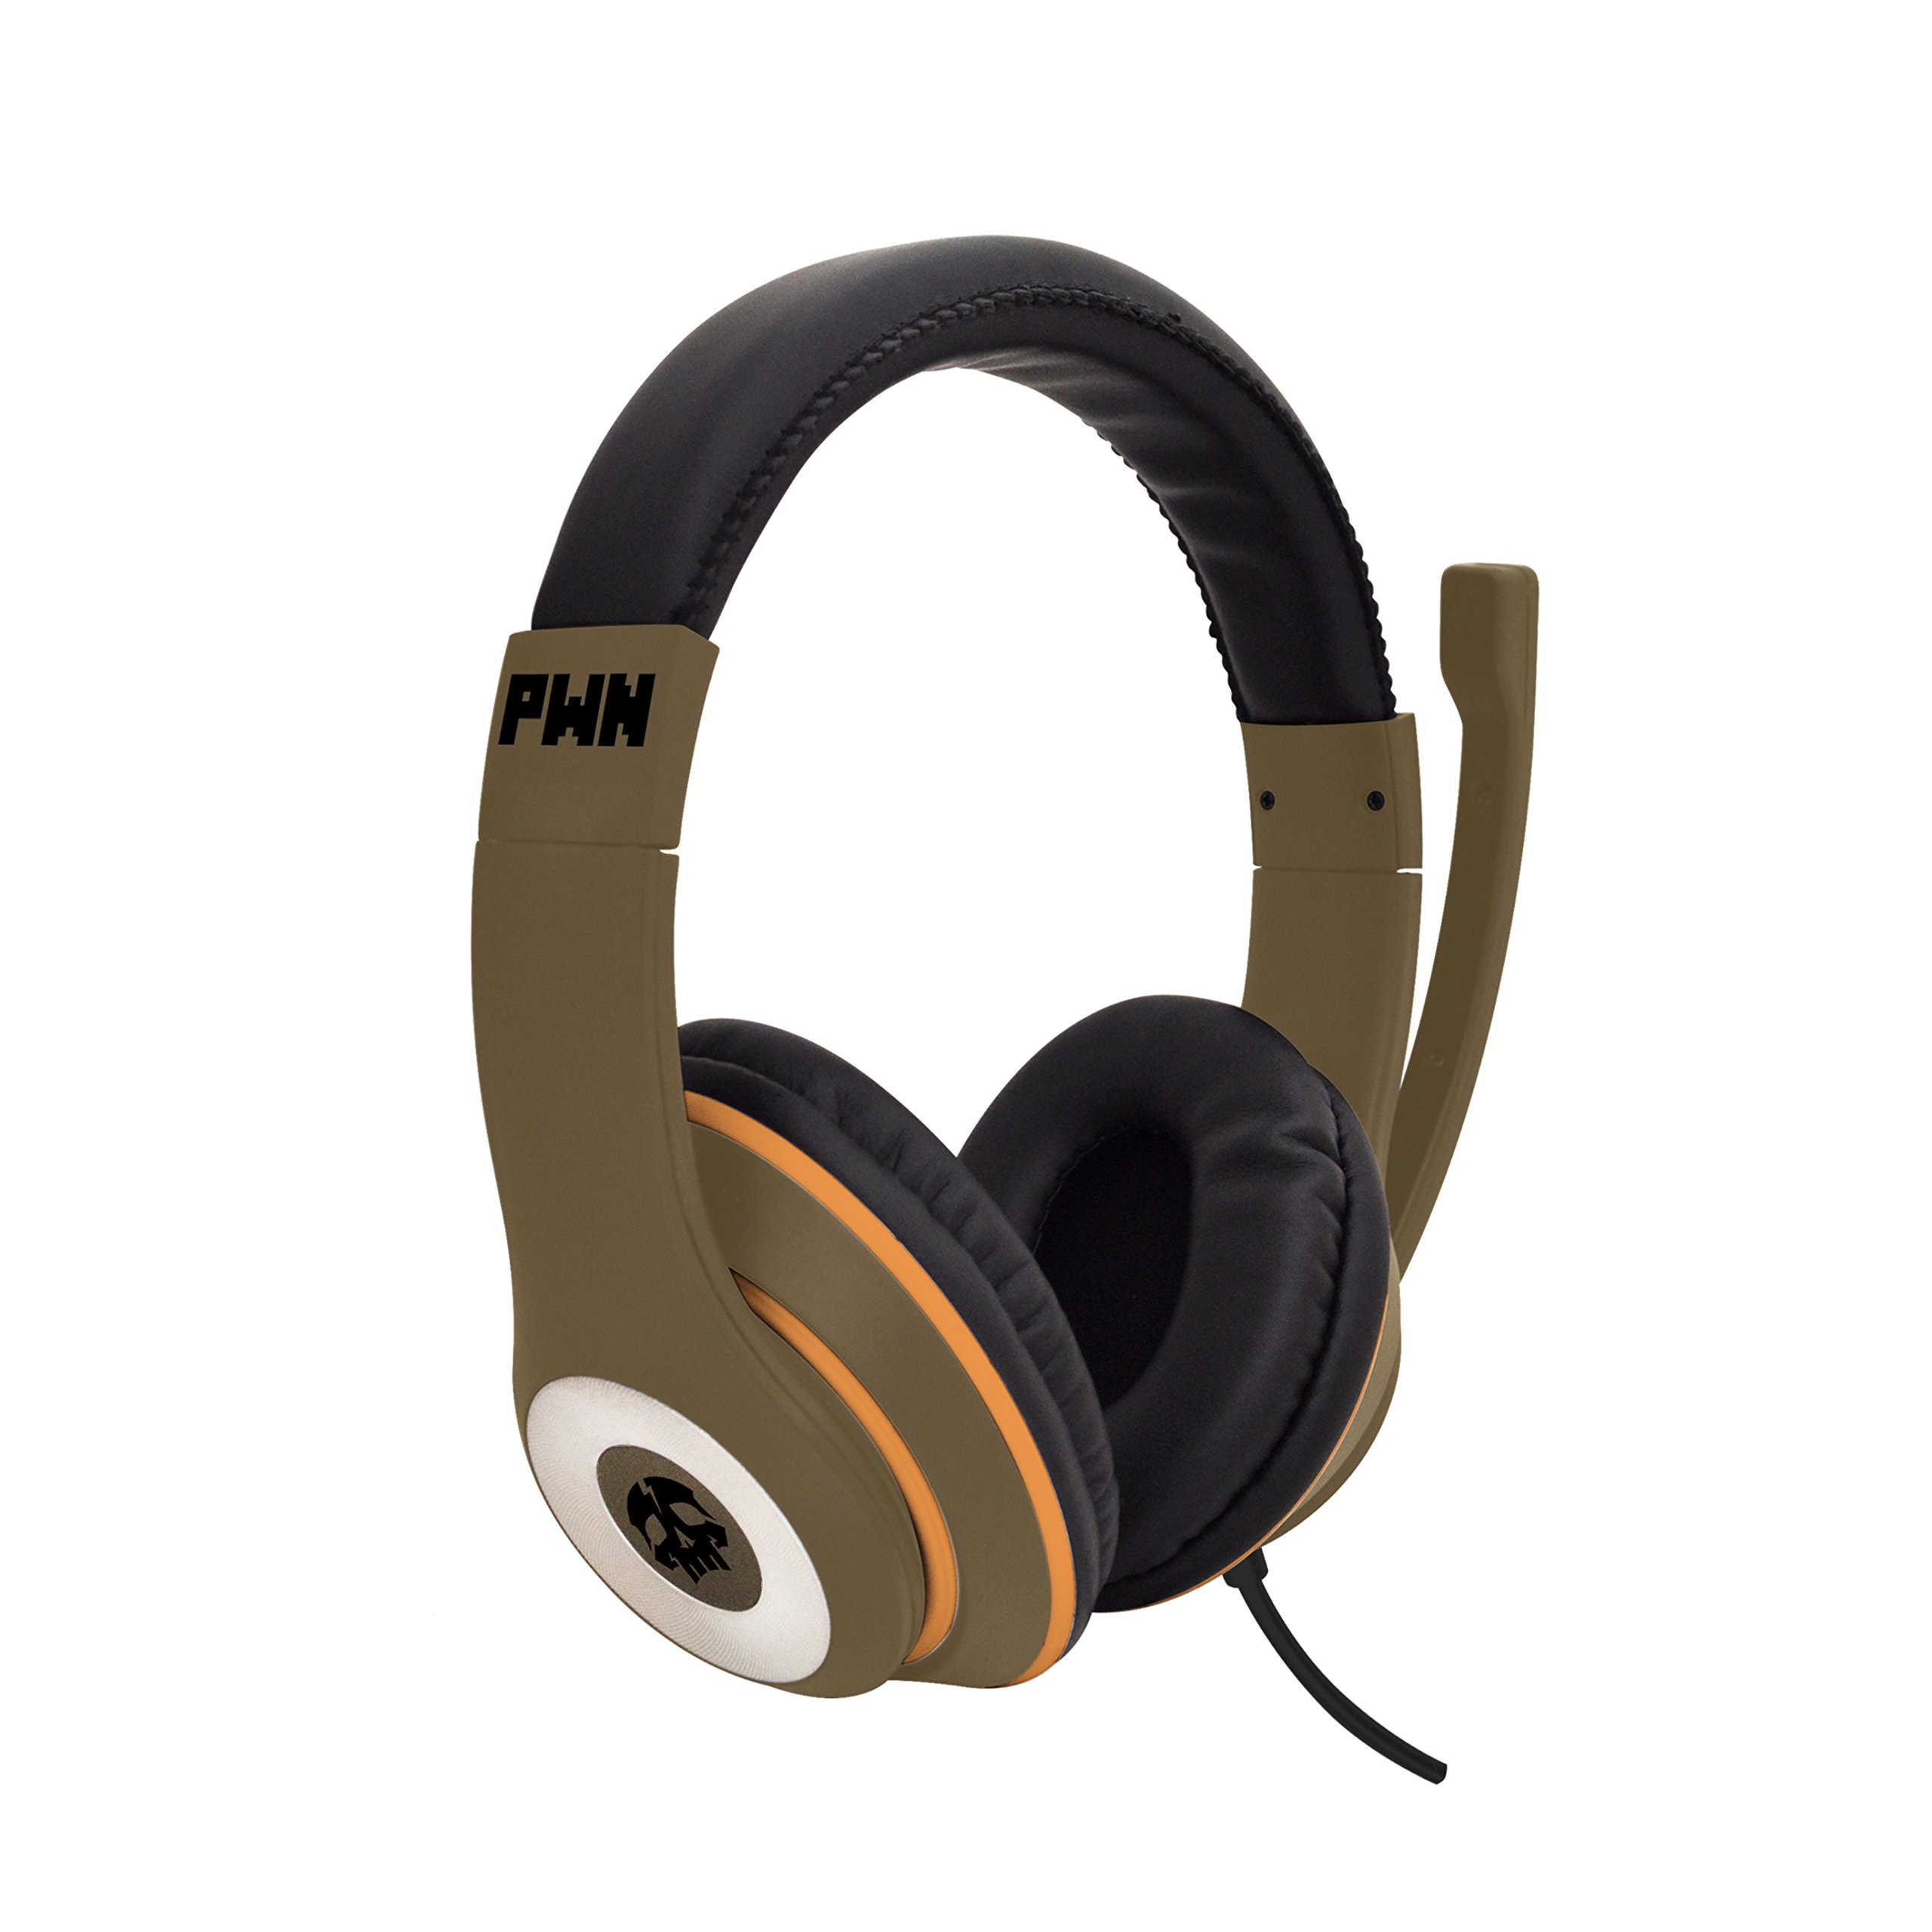 Audio Council PWN Gaming Headset with Stereo Over Ear Gamer Headphones, Adjustable Microphone, Inline Volume Control Mic PS4 PC WiiU Xbox Smartphones PC Tablets (Khaki/Gold)